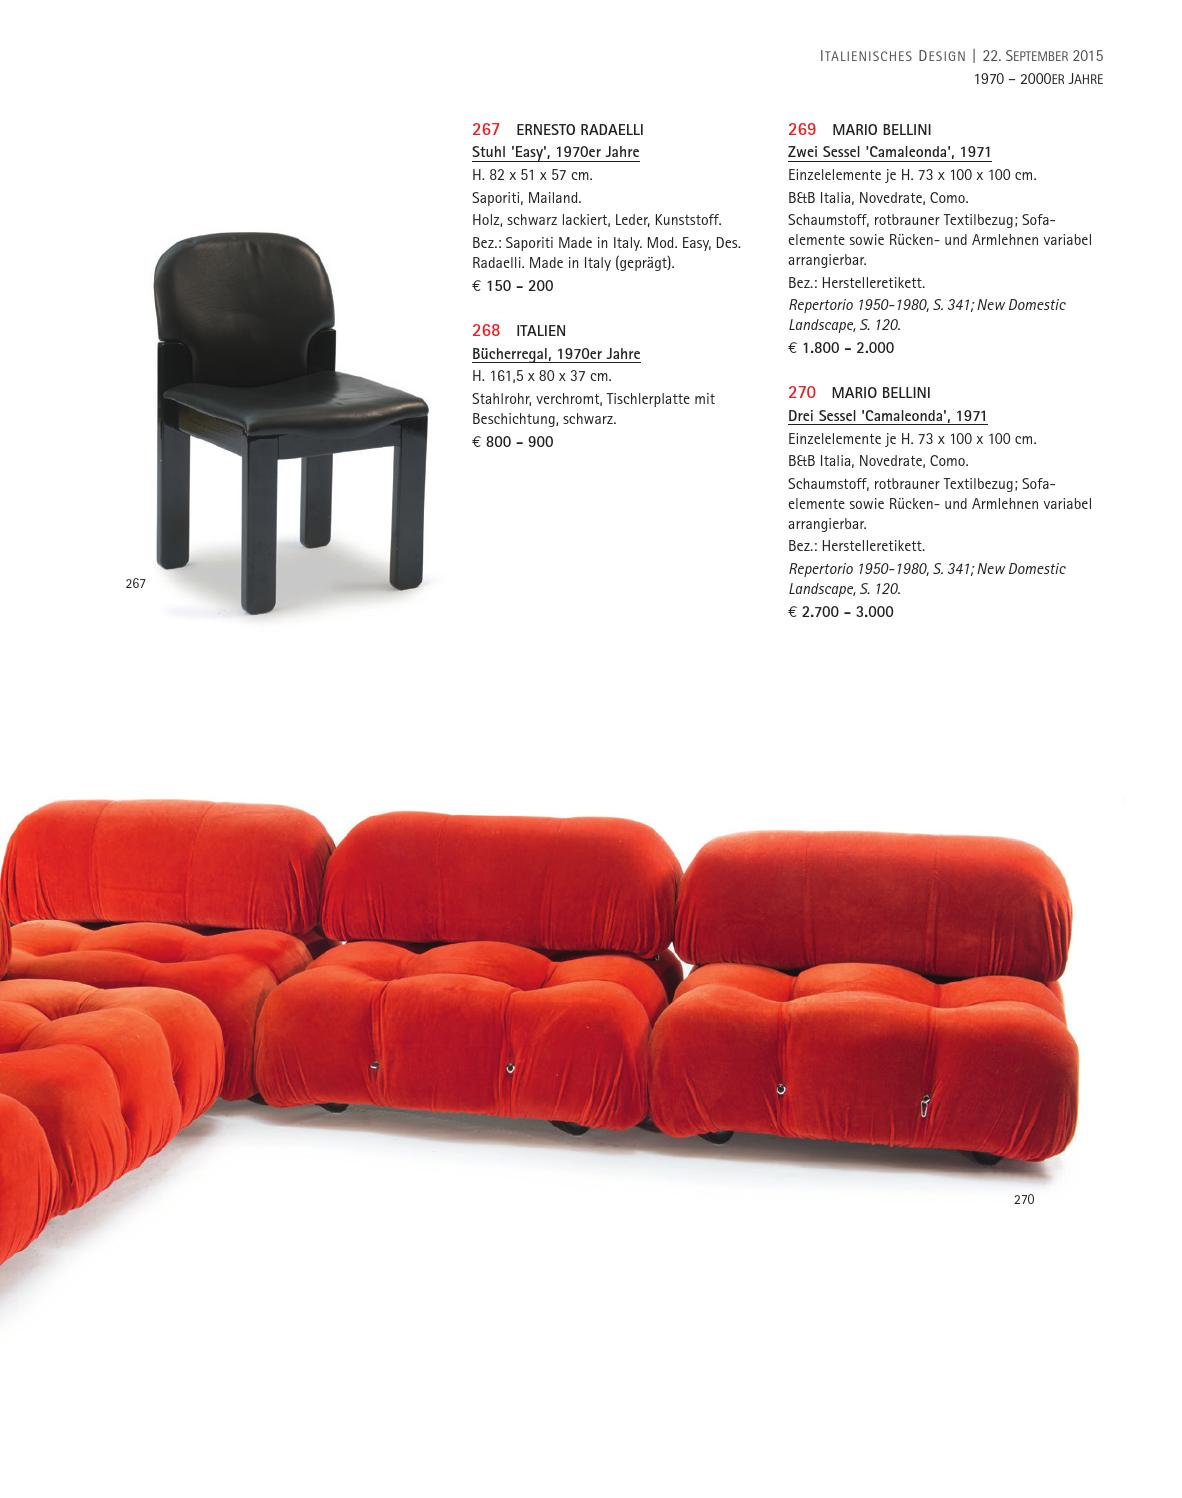 Saporiti Italia Designer Sessel Auction 122a Italian Design Quittenbaum Art Auctions By